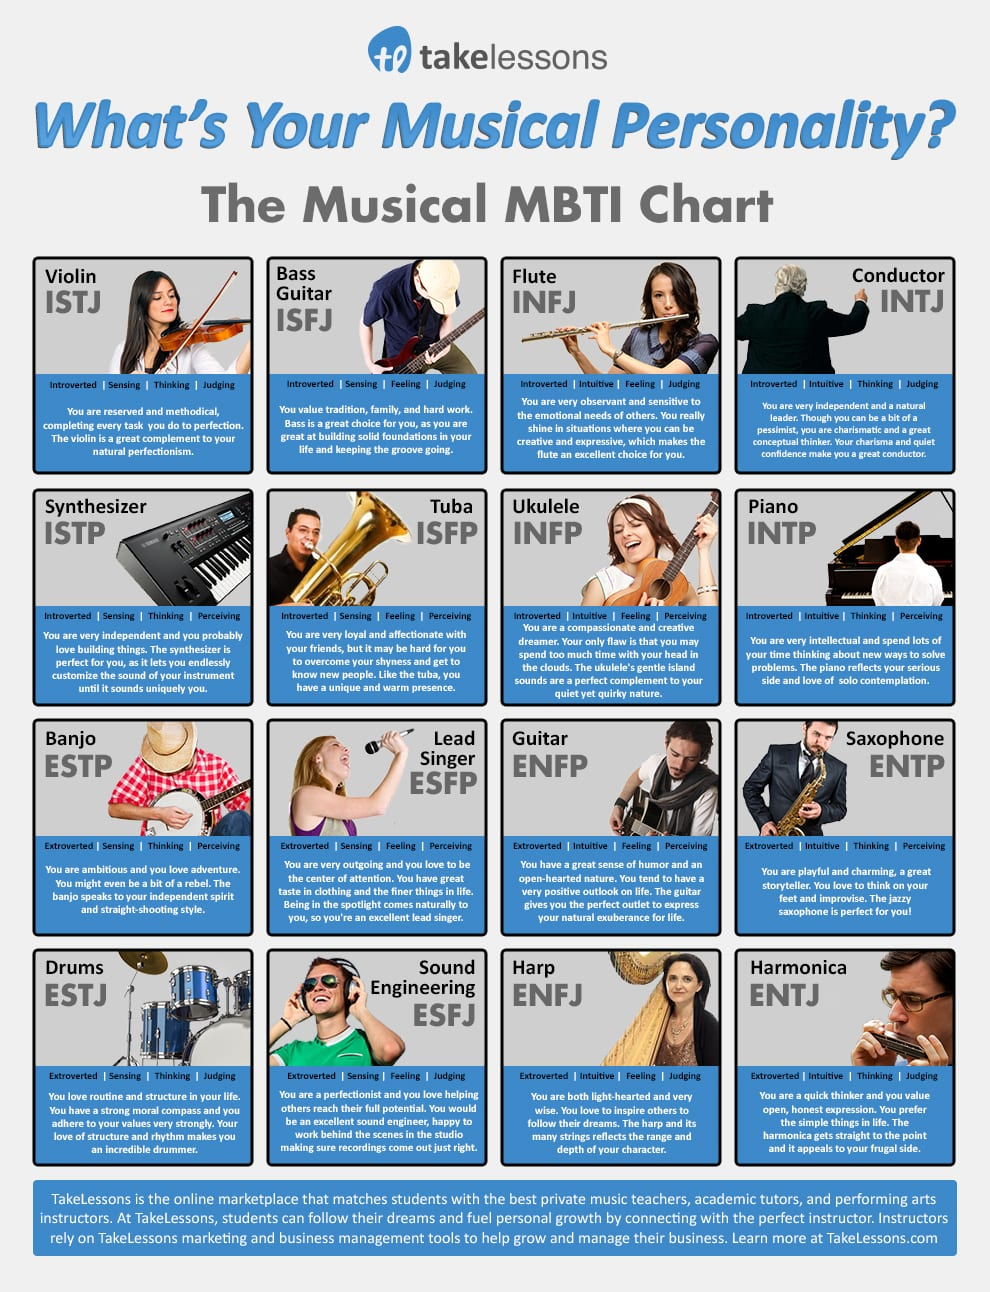 Musical Myers-Briggs personality test